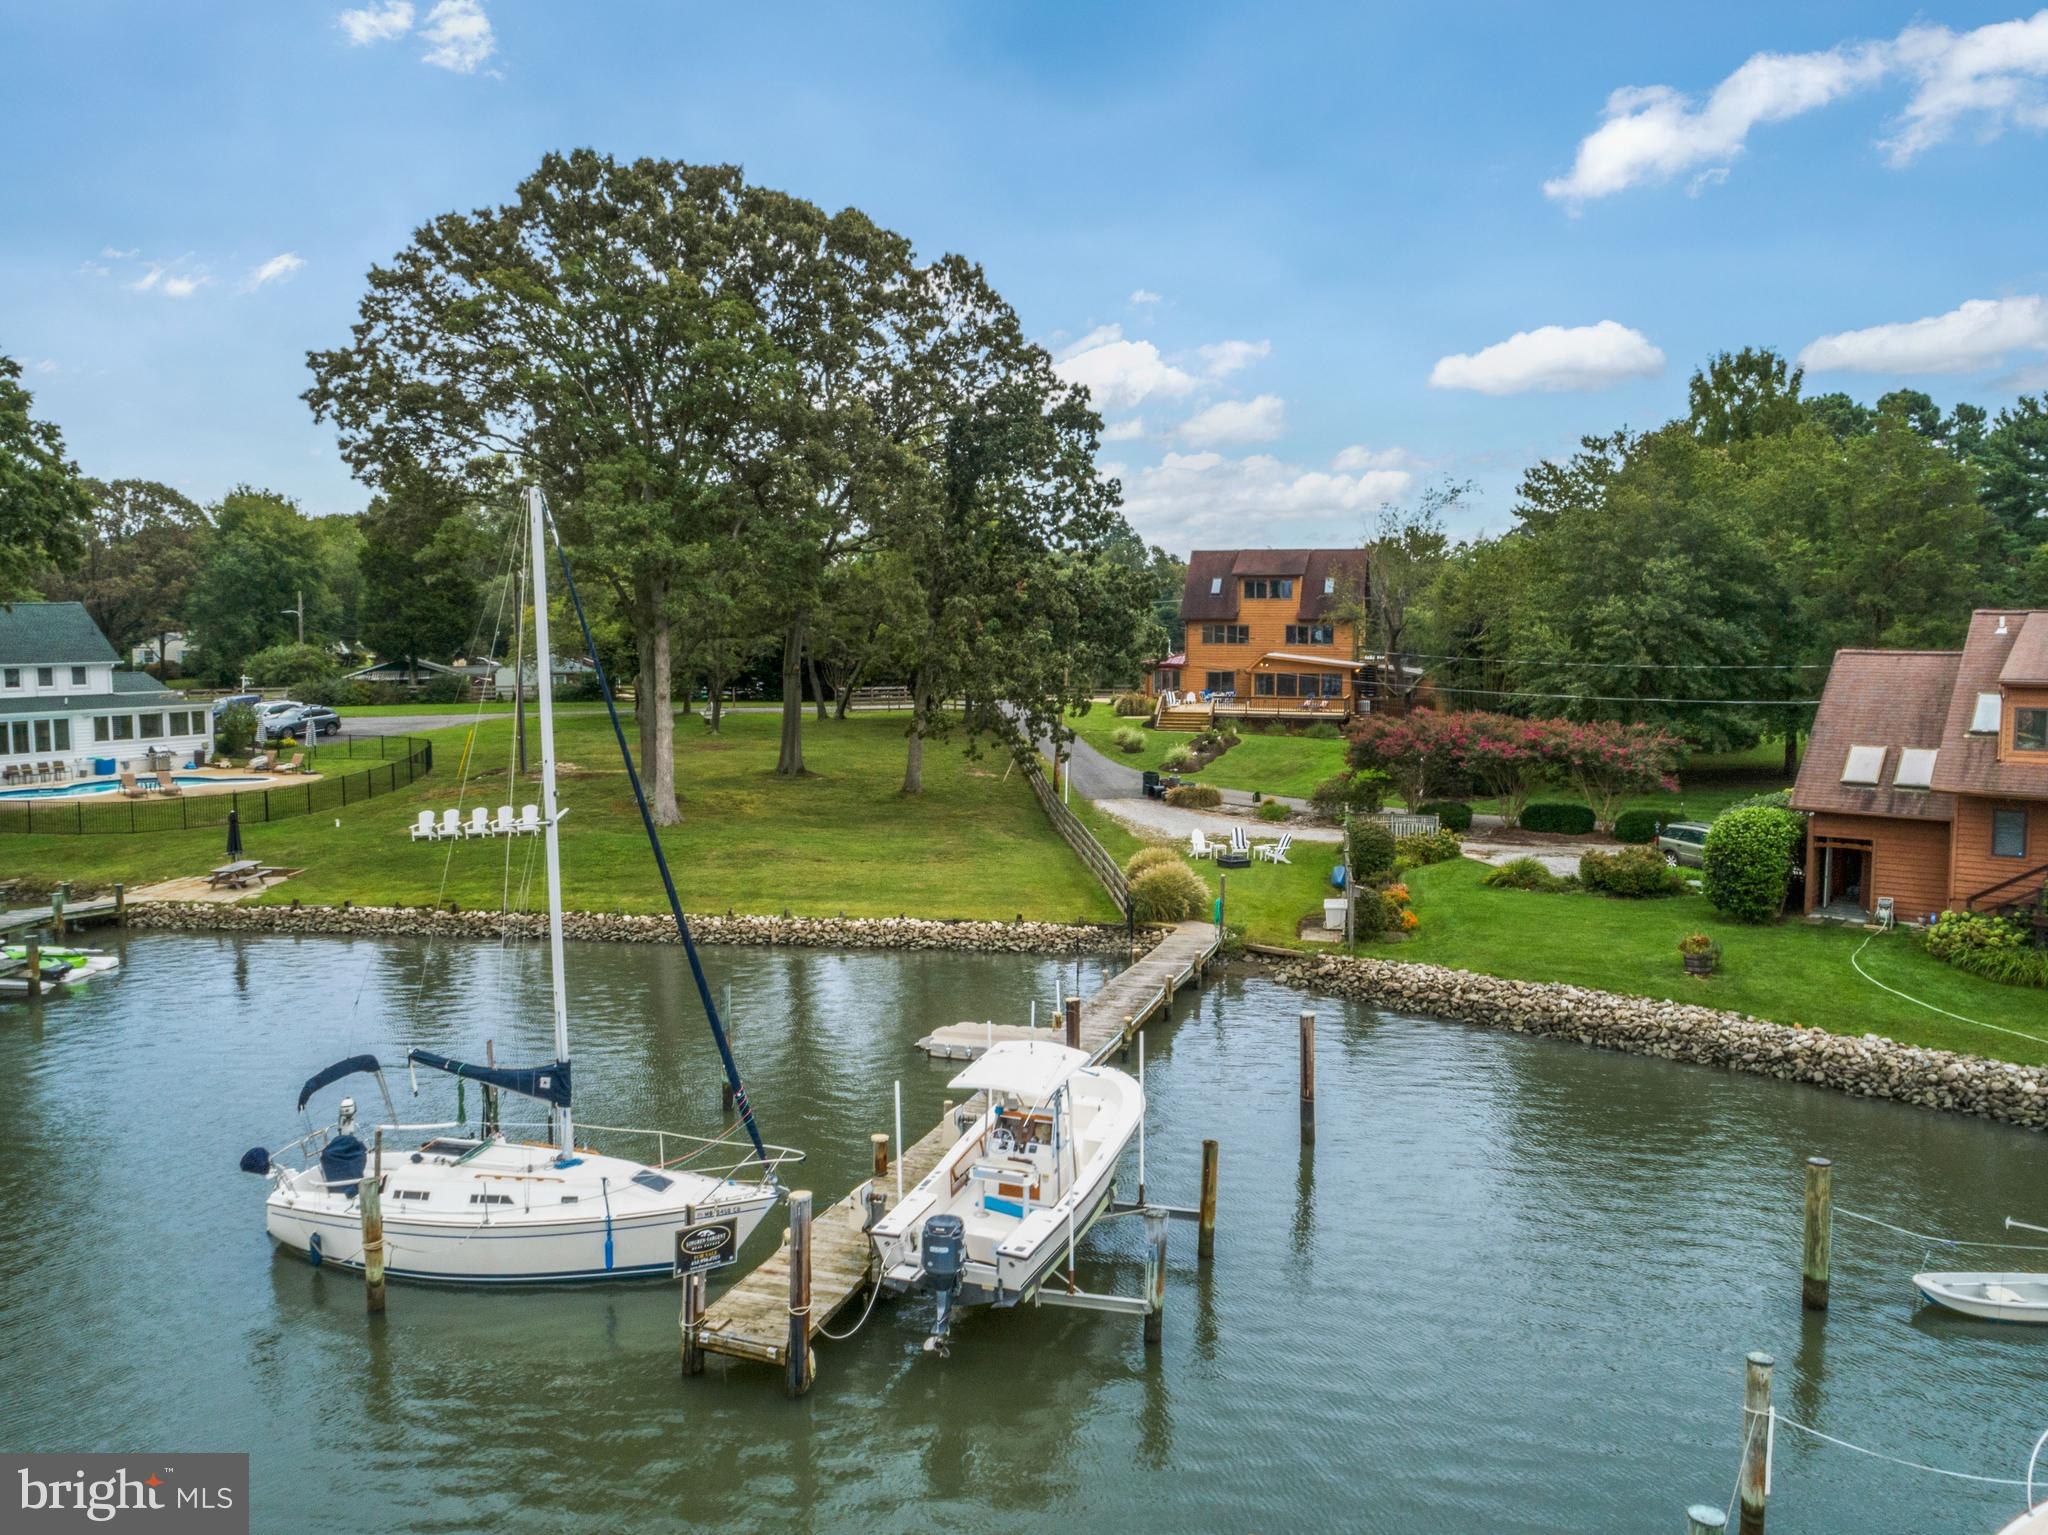 EDGEWATER WATERFRONT on .72 acres!!  Breathtaking sunset views await you at this prime waterfront property located on a private lane of million-dollar waterfront homes.  Water views fill this sunny home on three levels.  The living room and kitchen-sun room walk out to a huge deck overlooking the water.  The kitchen has gorgeous quartz countertops including an 8-foot island with seating.  The kitchen flows into the adjoining sunroom for relaxed dining or sitting. The living room is light and bright with white painted beams for a modern, coastal vibe.  Decorator-selected neutral creams and greys have been used in the beautiful updated flooring and freshly painted walls.  There is a spacious main level guest bedroom and full bathroom.  Also on the main level is a library-study area and a large game-rec-TV room with access to the backyard and garage, as well as the laundry room with added storage. Lots and lots of windows bring in natural light to the 2nd floor which is home to the master bedroom suite with bath, and a large open area currently used for a home business office, plus an additional bedroom. Huge master bedroom with his and her (walk-in) closets and a balcony that overlooks the water and has stairs leading down to the private backyard.  Third floor has 2 bedrooms, full bath, and a common area between, with spectacular water views that could accommodate another sleeping area or would be a great hang-out room. This property also boasts multiple outdoor living spaces.  In addition to  the massive deck space, enjoy relaxing in privacy in the hot tub in the screened porch or sunbathe on the patio in the fenced back yard; or make use of the huge fenced side yard for more active recreation or birdwatching the overlooking cove. This is a fantastic location for boating whether you like to sail or fish or just paddle board.  You can dock your sailboat (4.5 ft water depth) and power boat (10,000lb boat lift) and other water toys at the pier located on the protected w